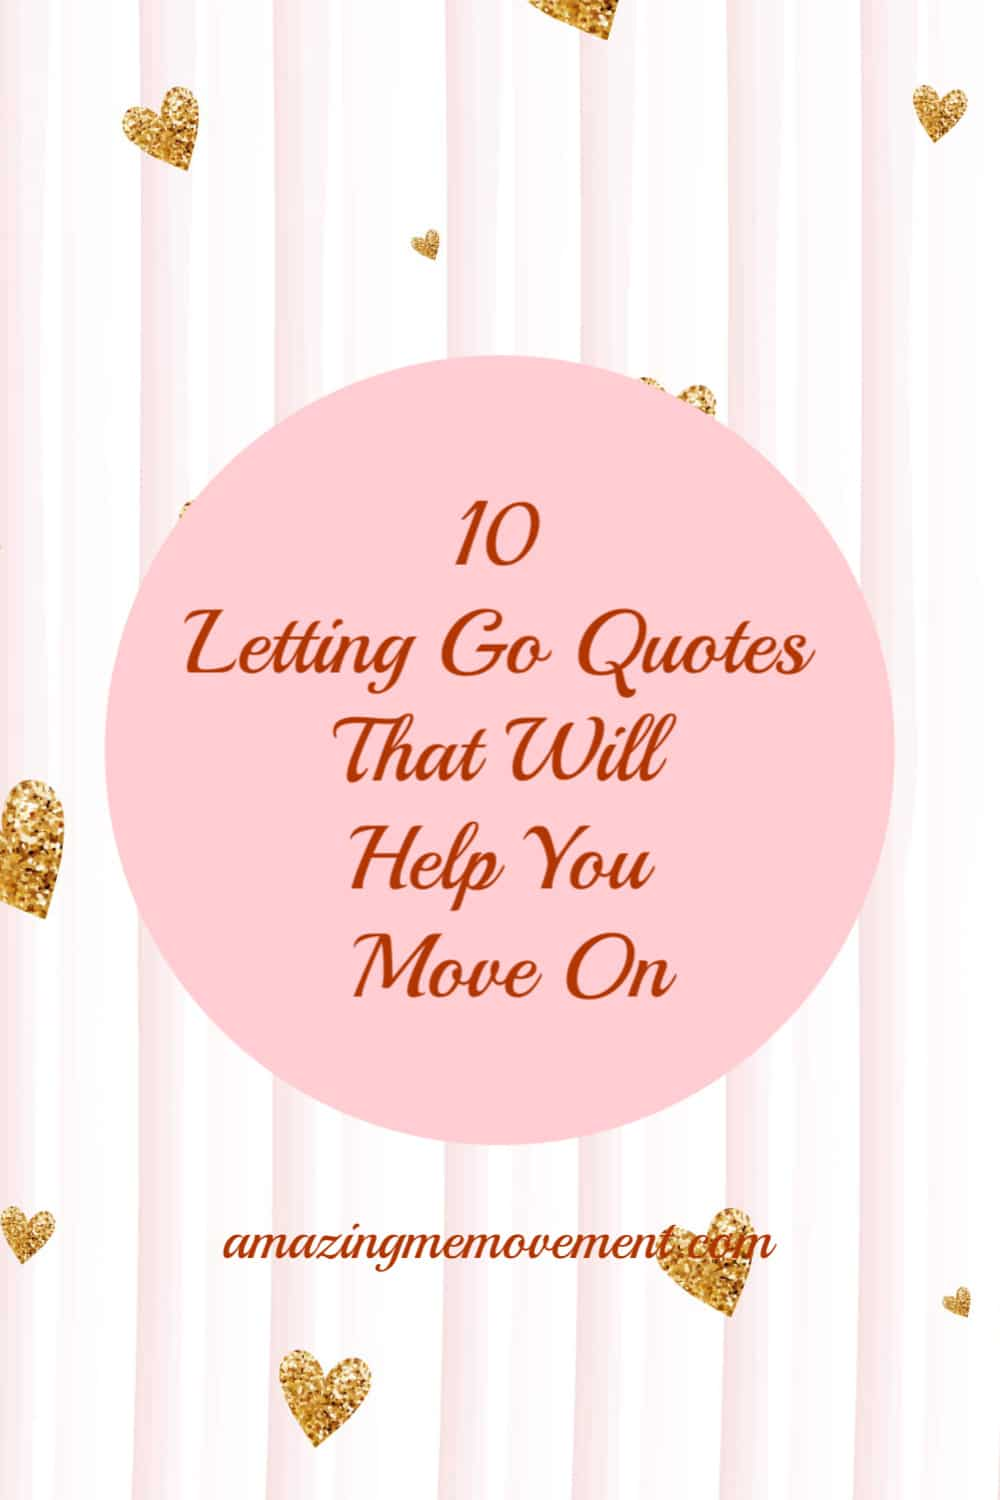 10 letting go quotes that will help you move on